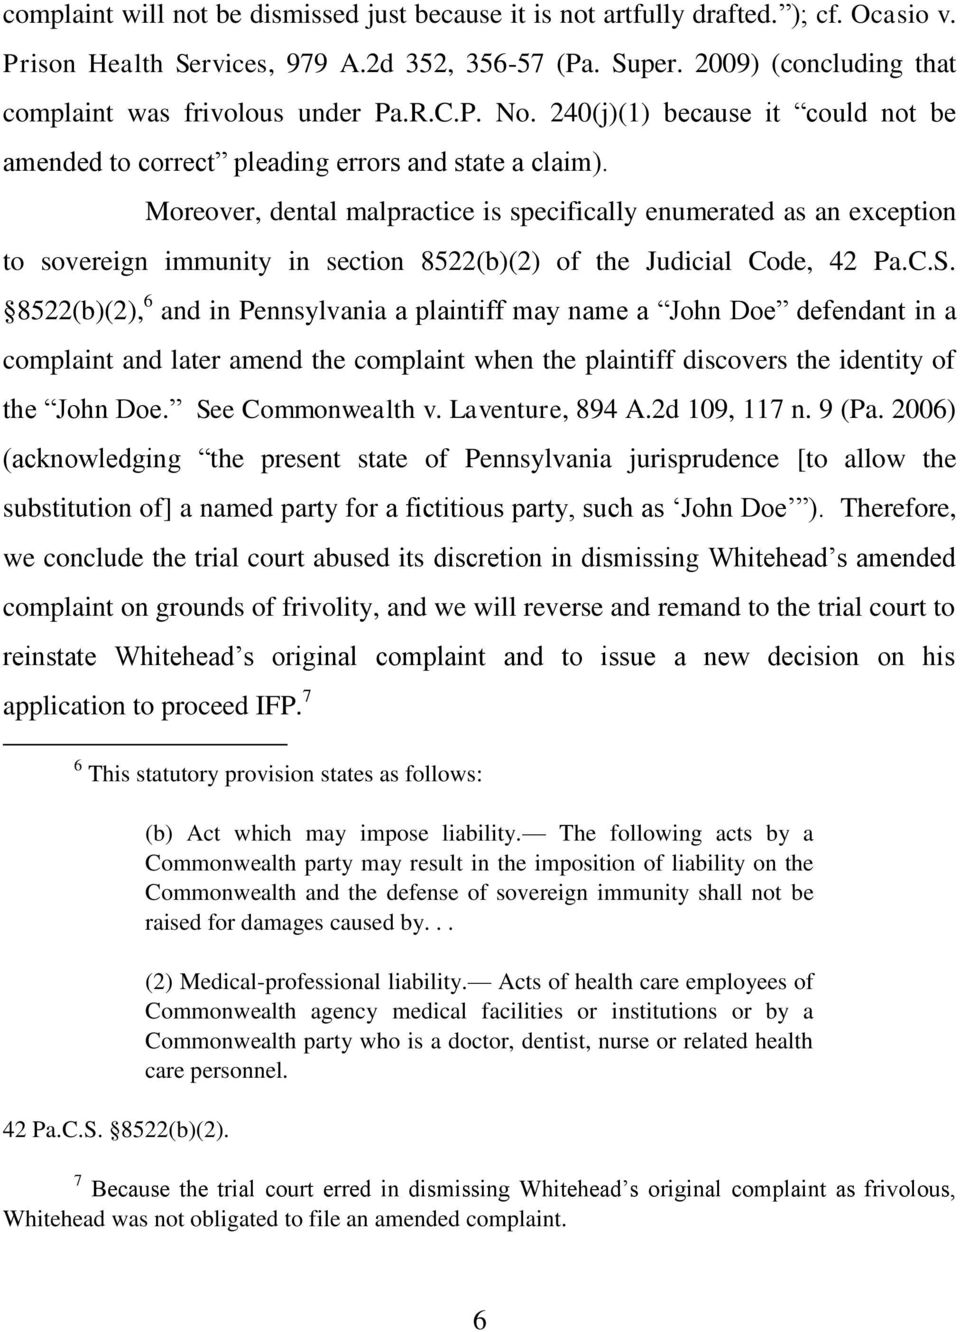 Moreover, dental malpractice is specifically enumerated as an exception to sovereign immunity in section 8522(b)(2) of the Judicial Code, 42 Pa.C.S.